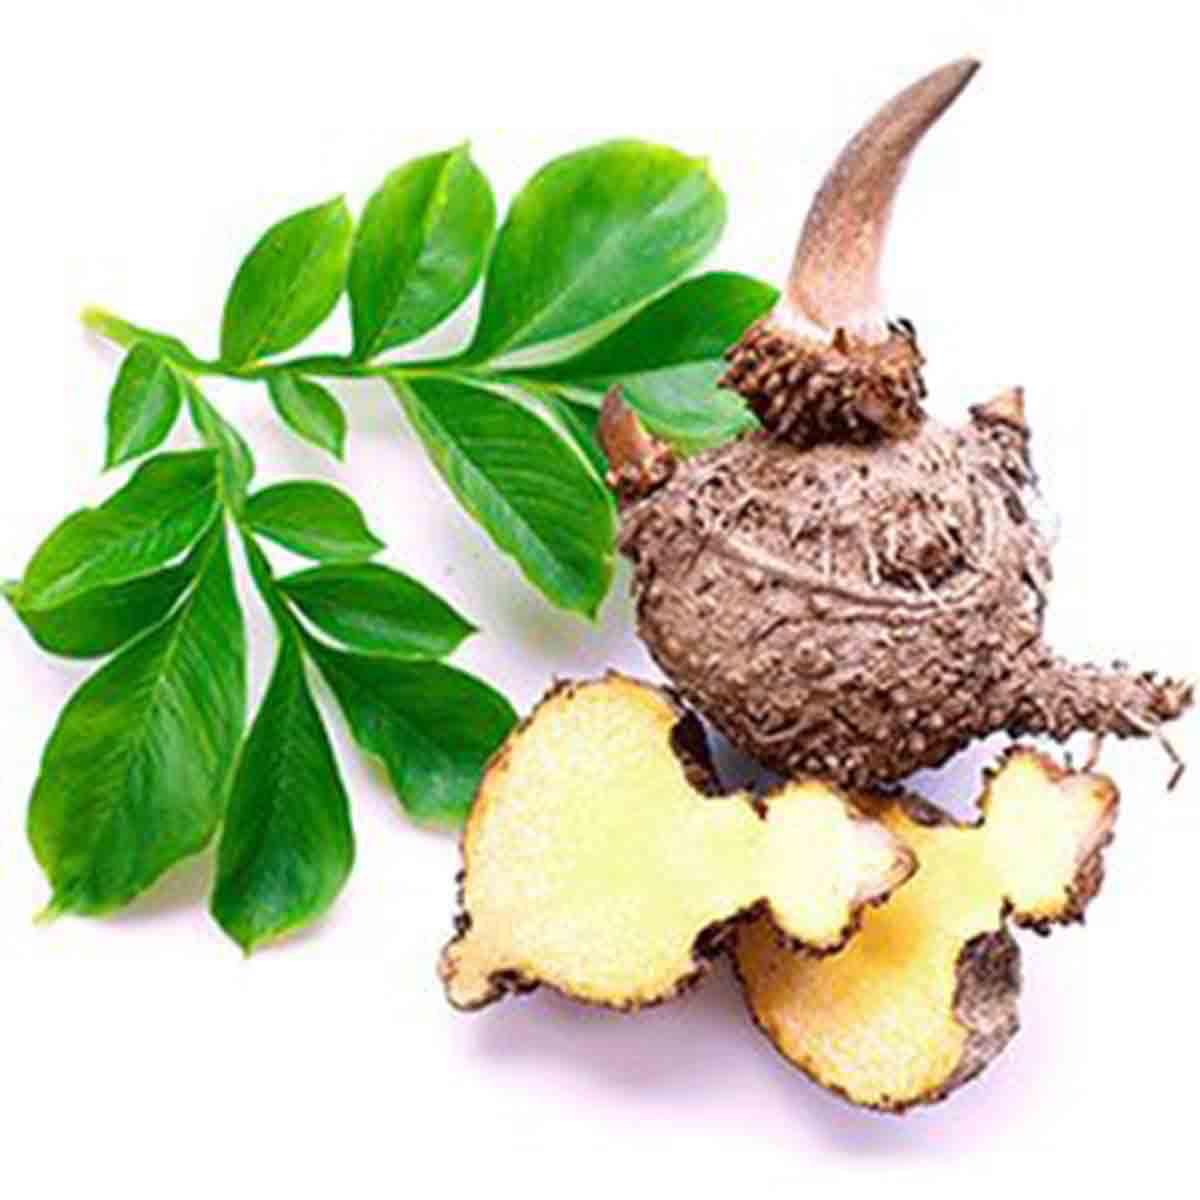 How to Avoid Buying Fake Glucomannan - Konjac Root